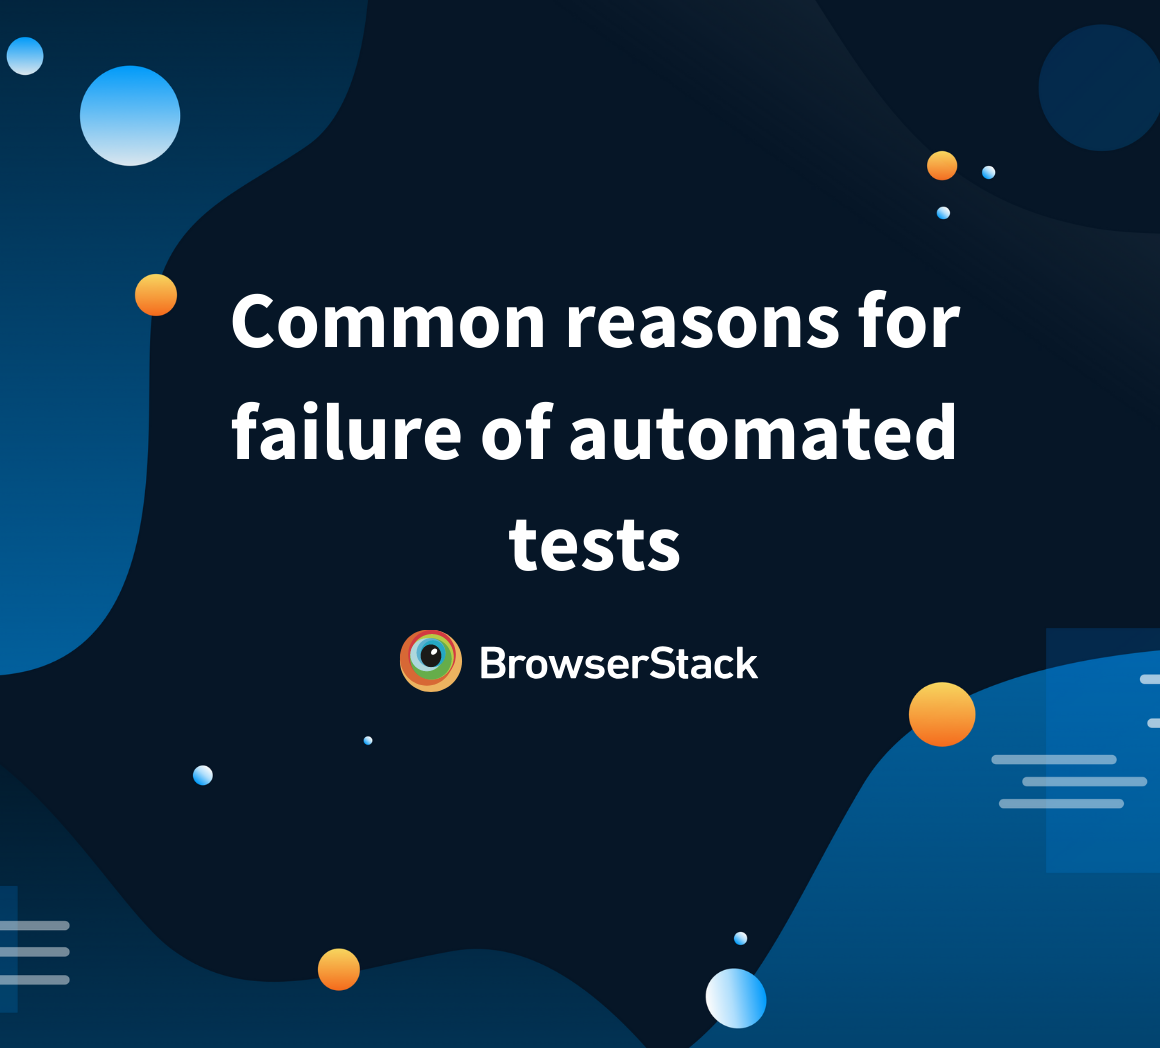 reasons for automated test failure